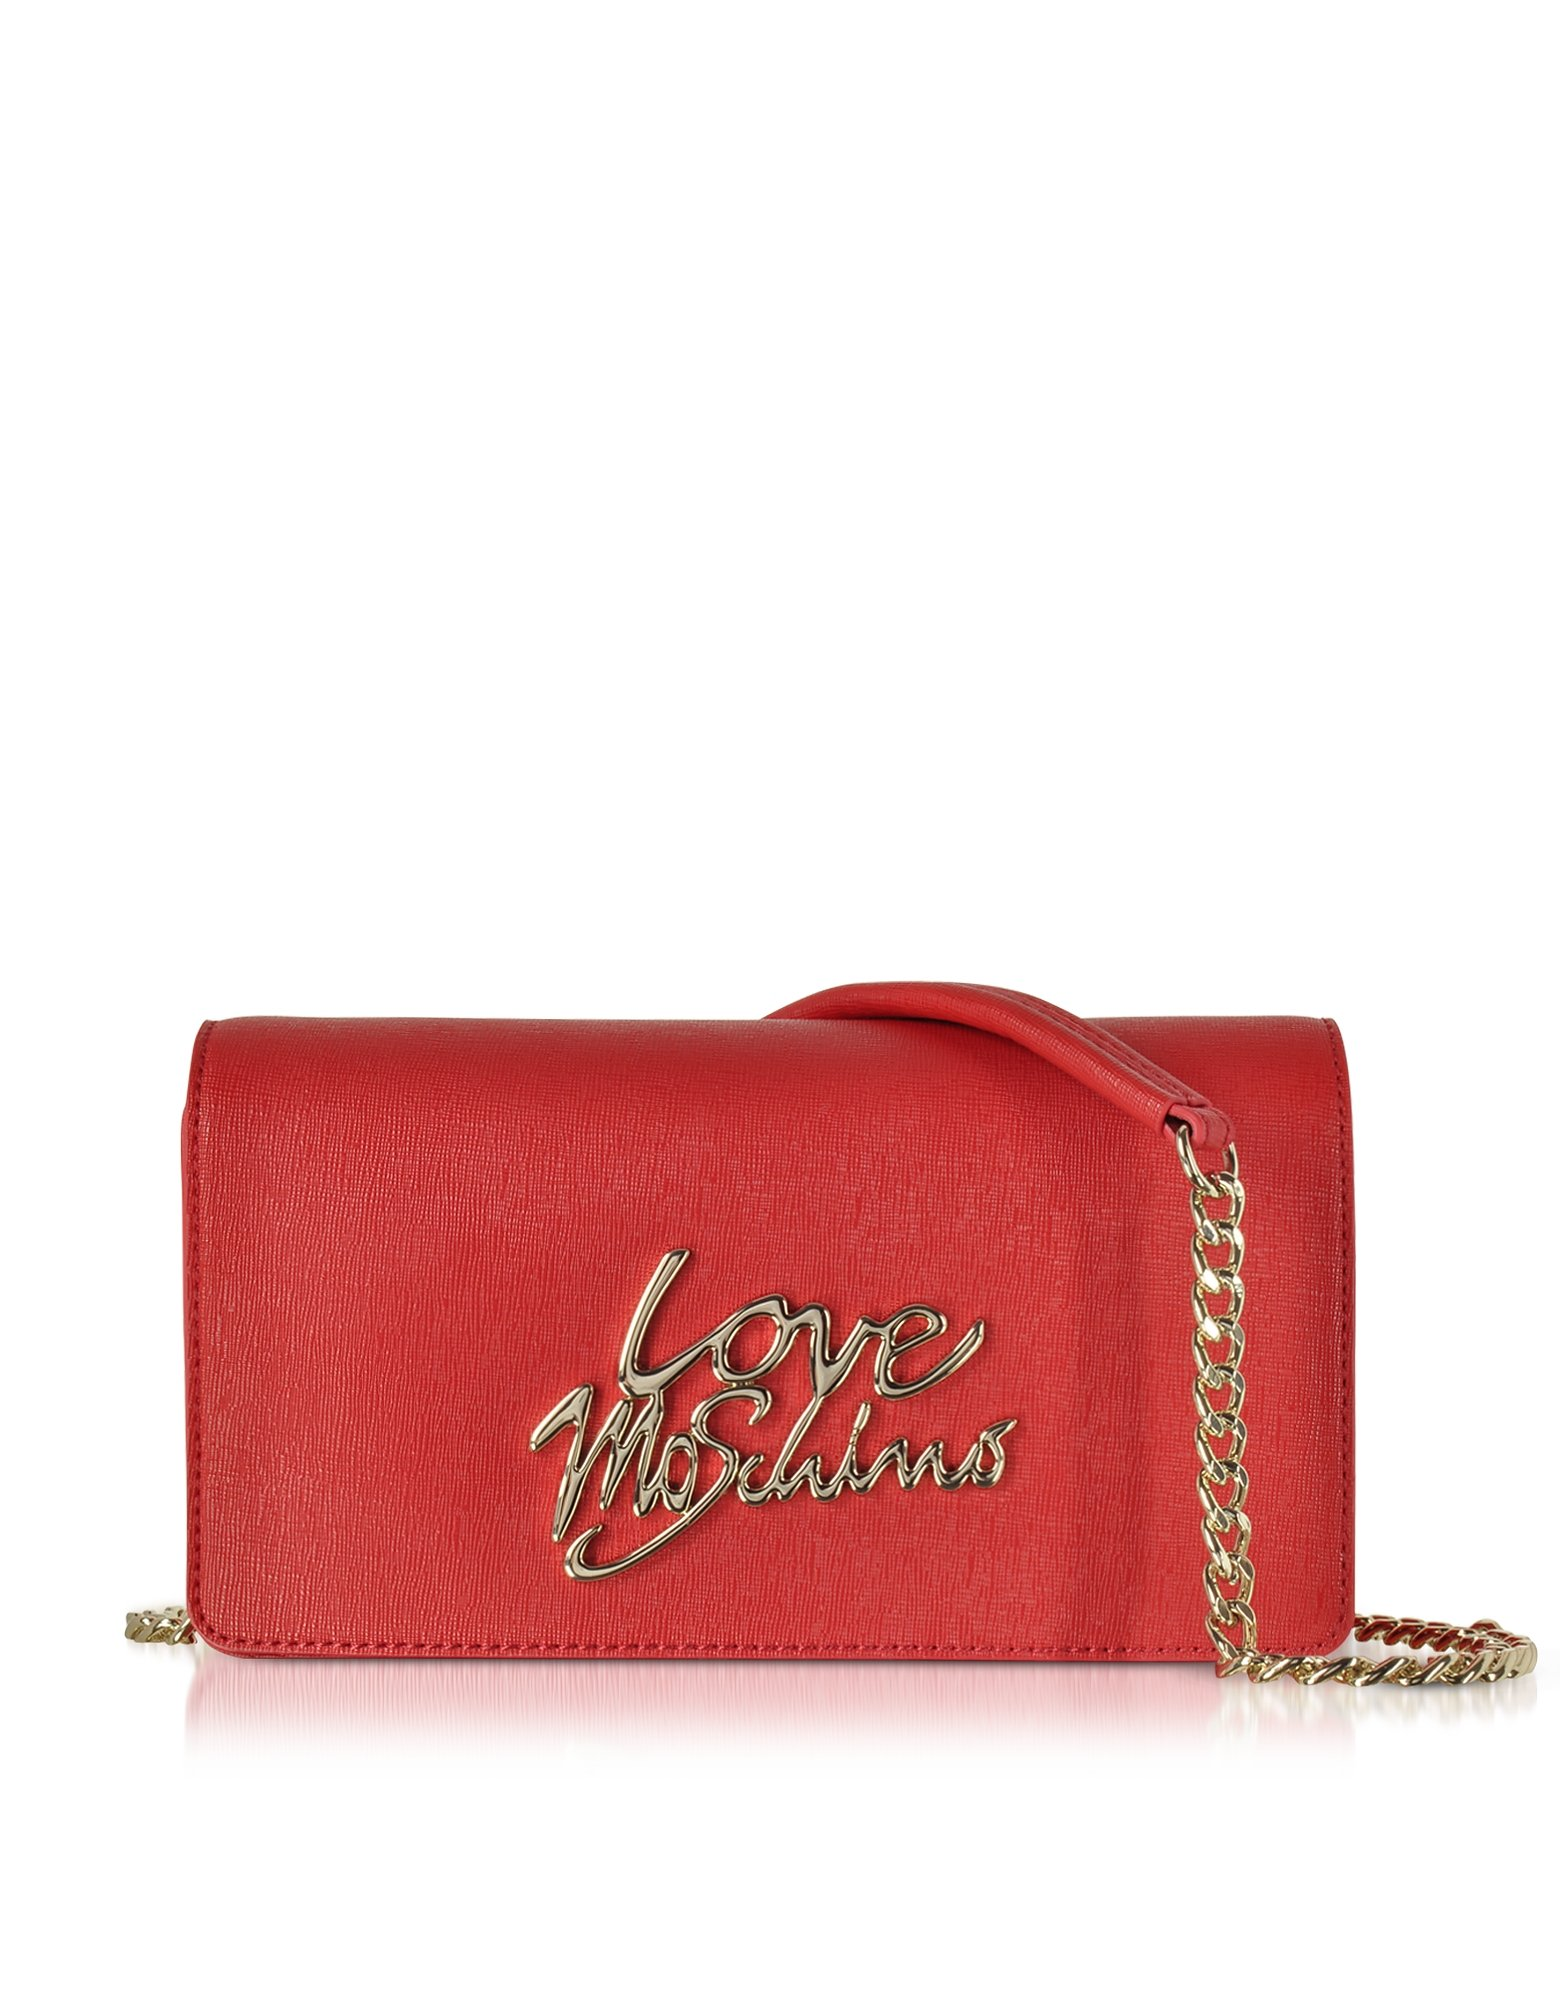 Love Moschino Women's Jc4047pp15le0500rosso Red Faux Leather Shoulder Bag